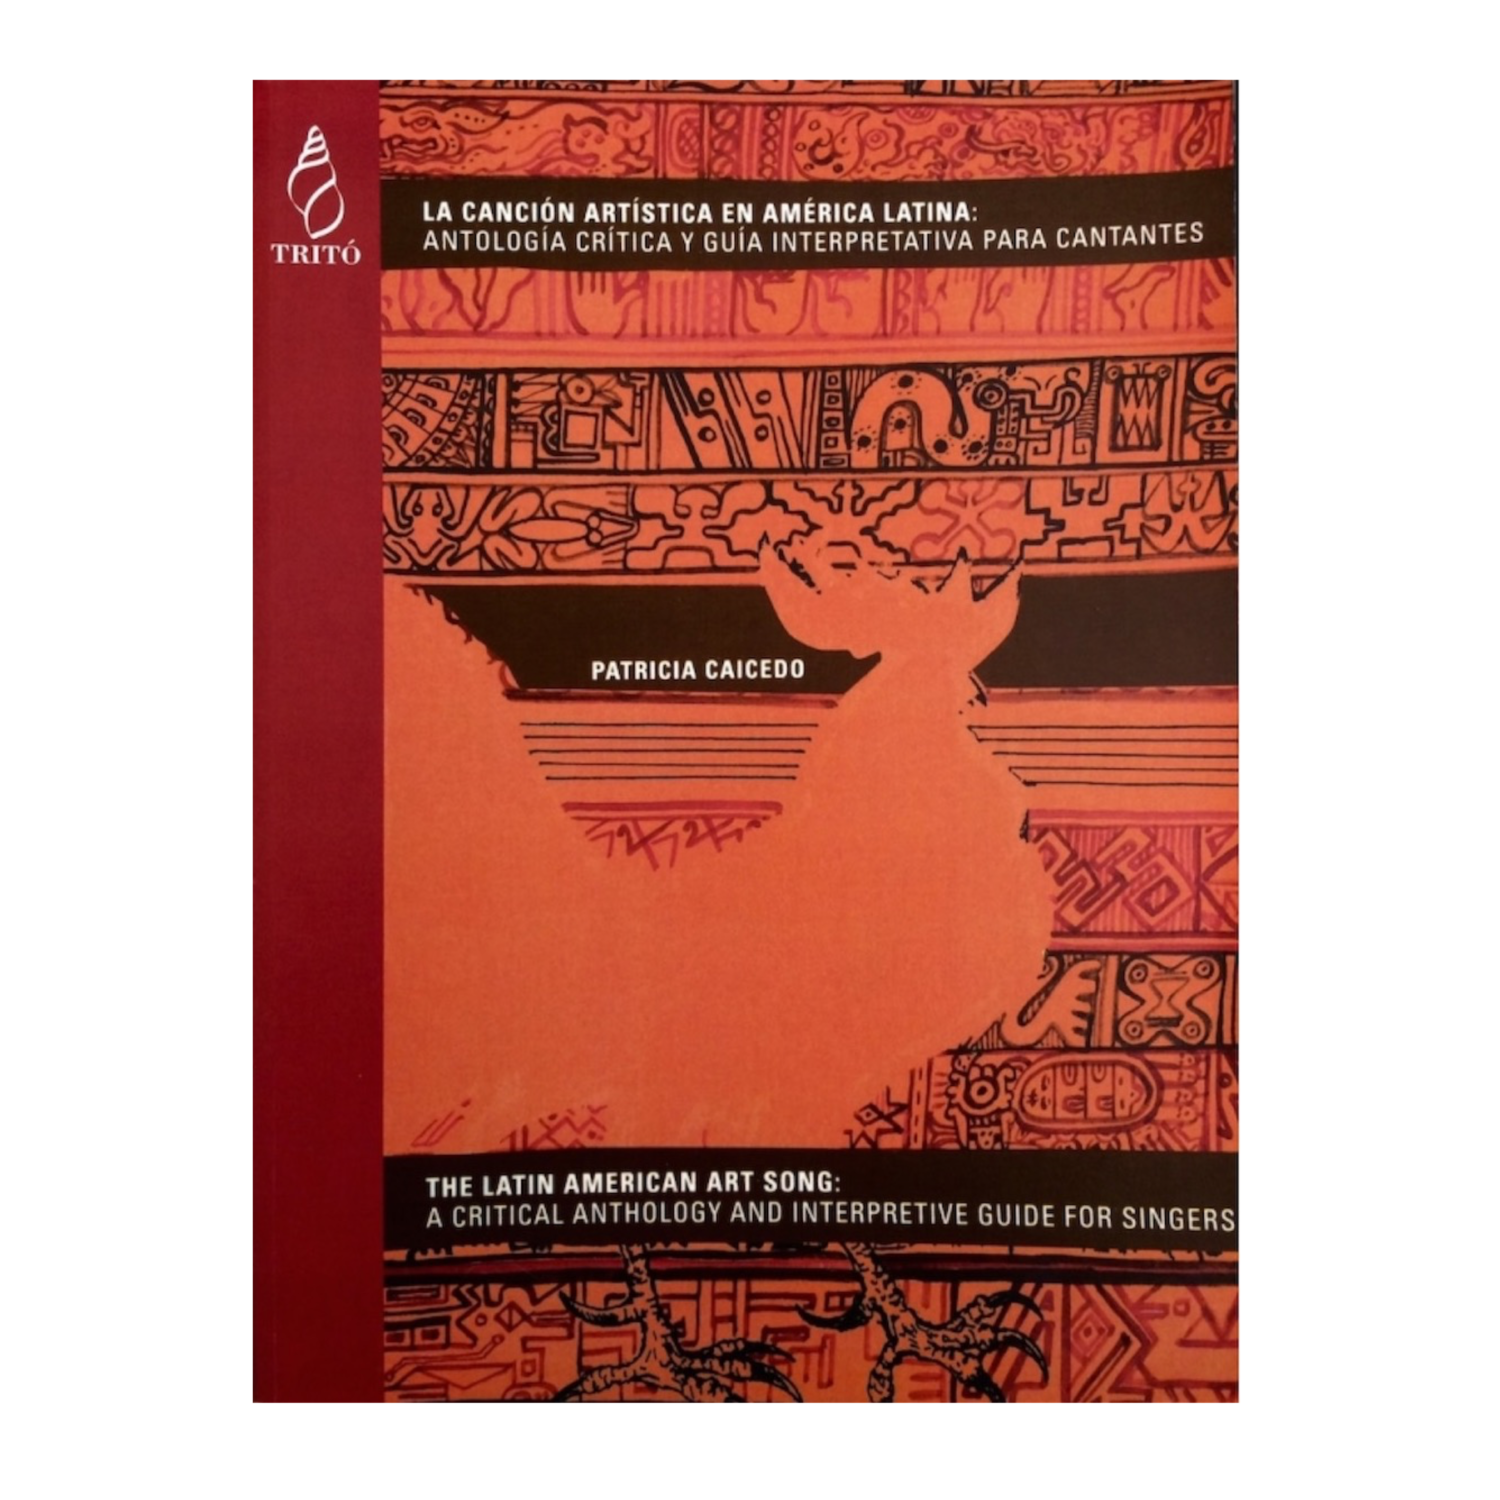 The Latin American art song a critical anthology